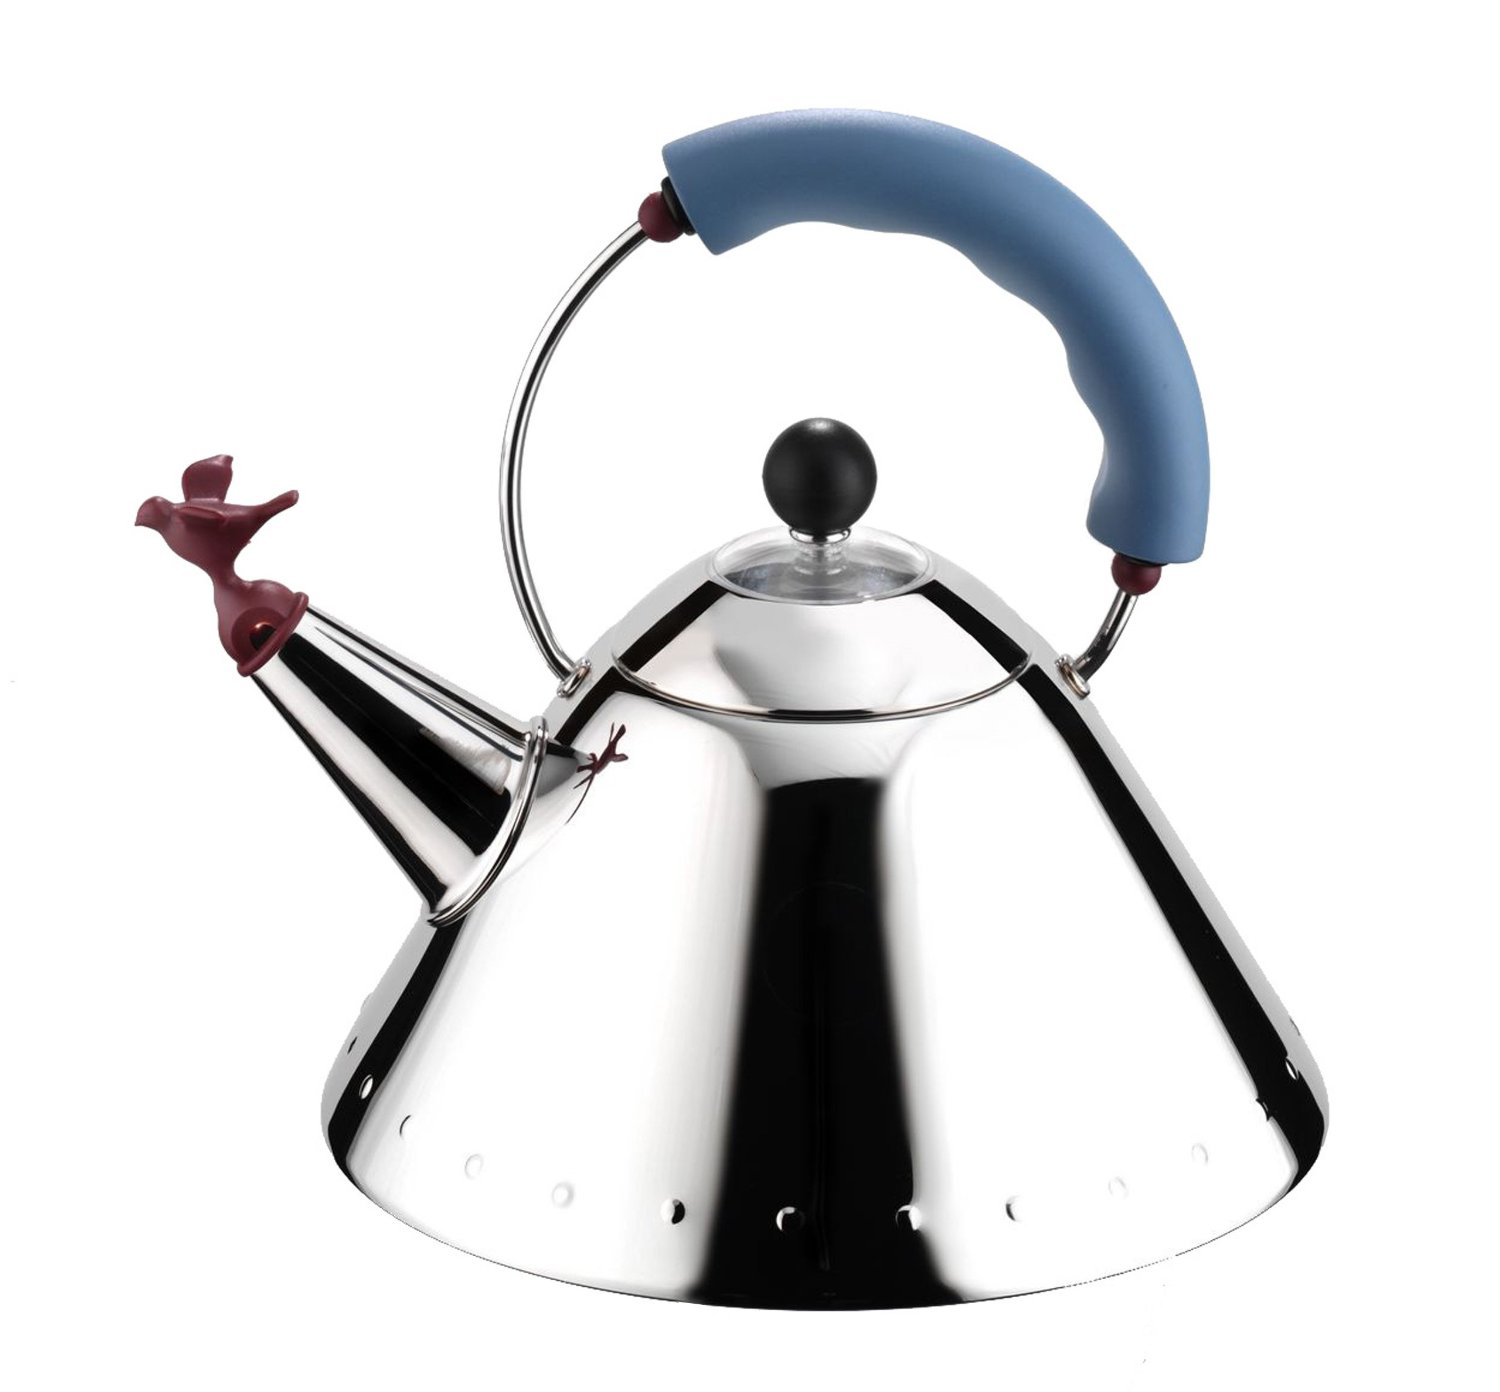 Marvellous tea kettles for kitchen and dining room with copper tea kettle